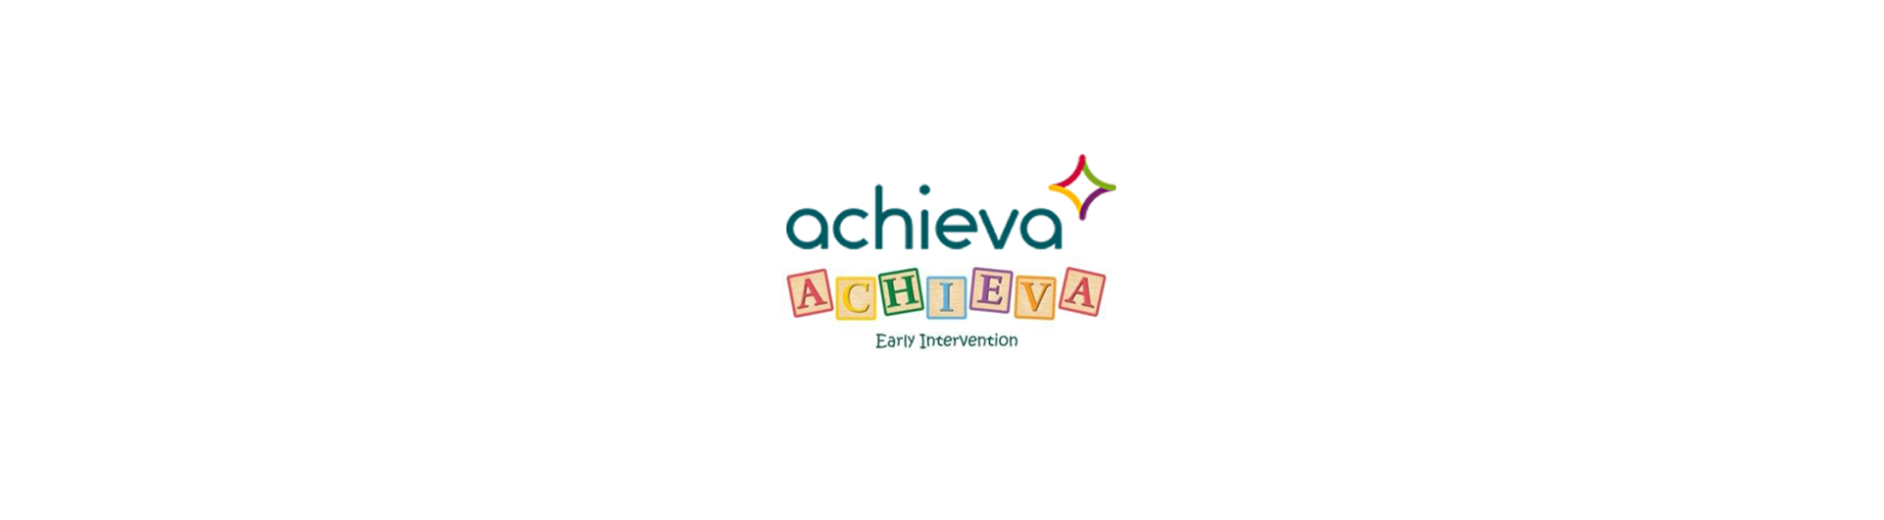 Early Intervention Services with Achieva